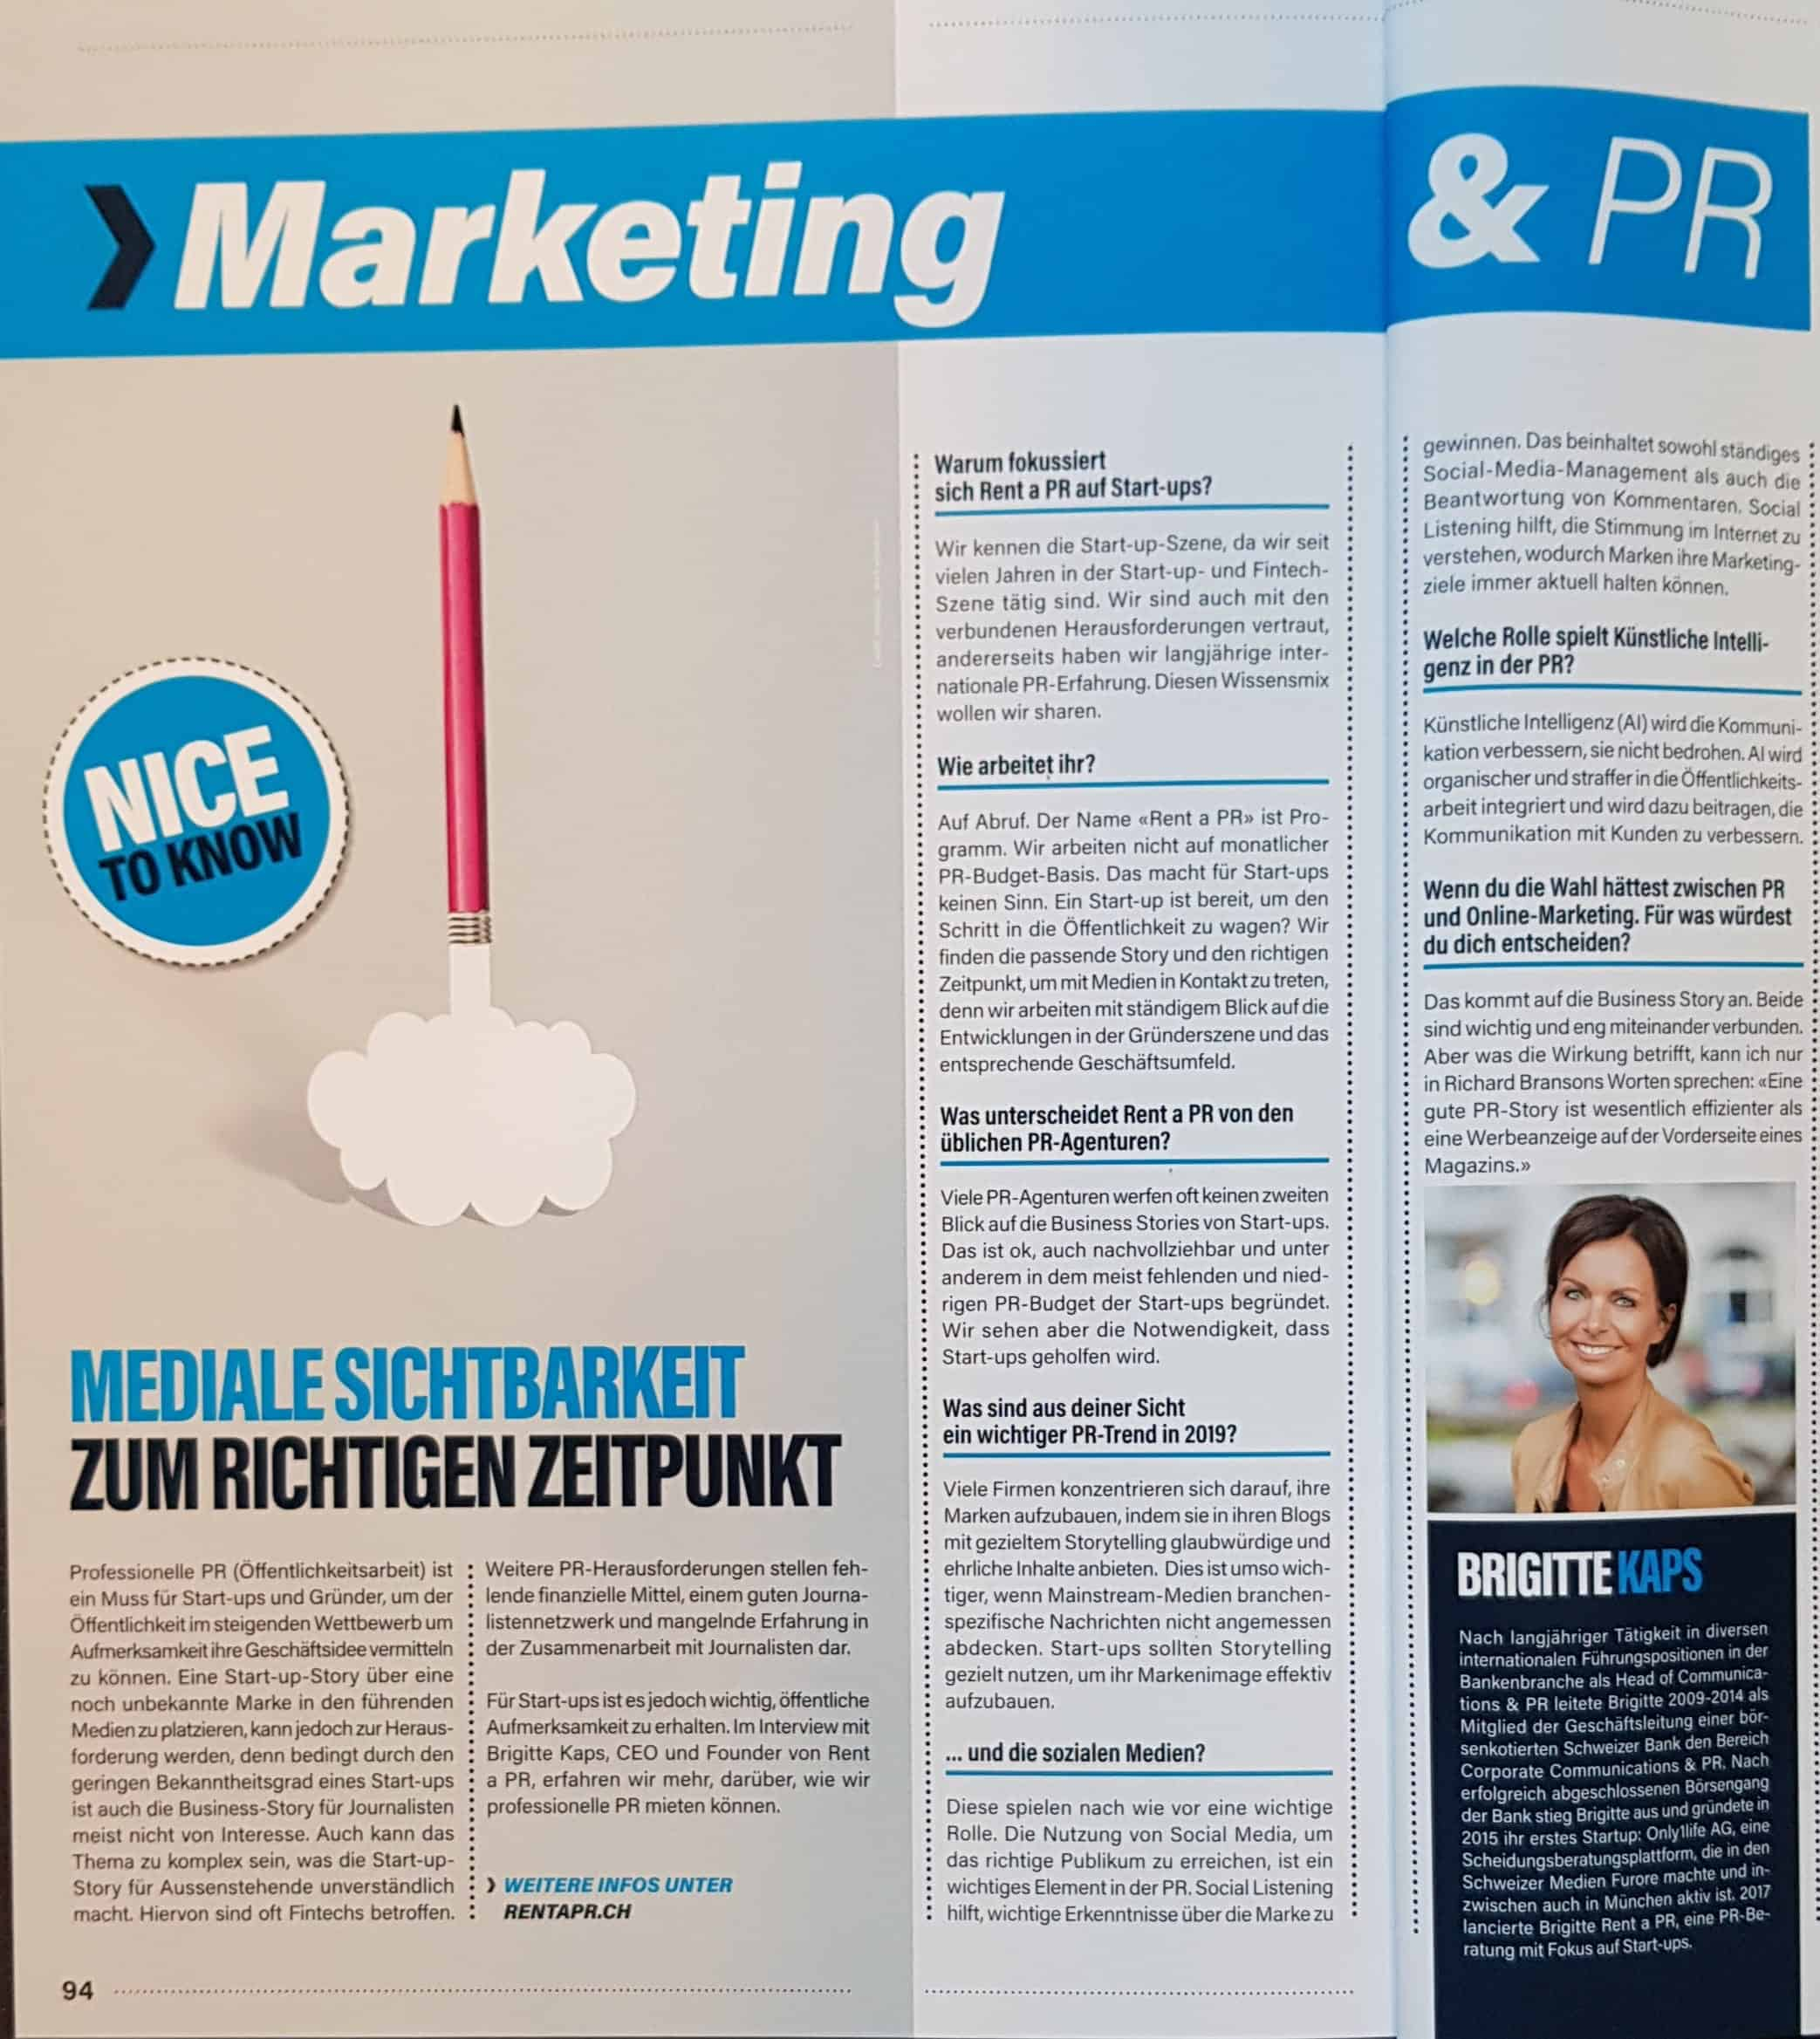 Public Relations - marketing